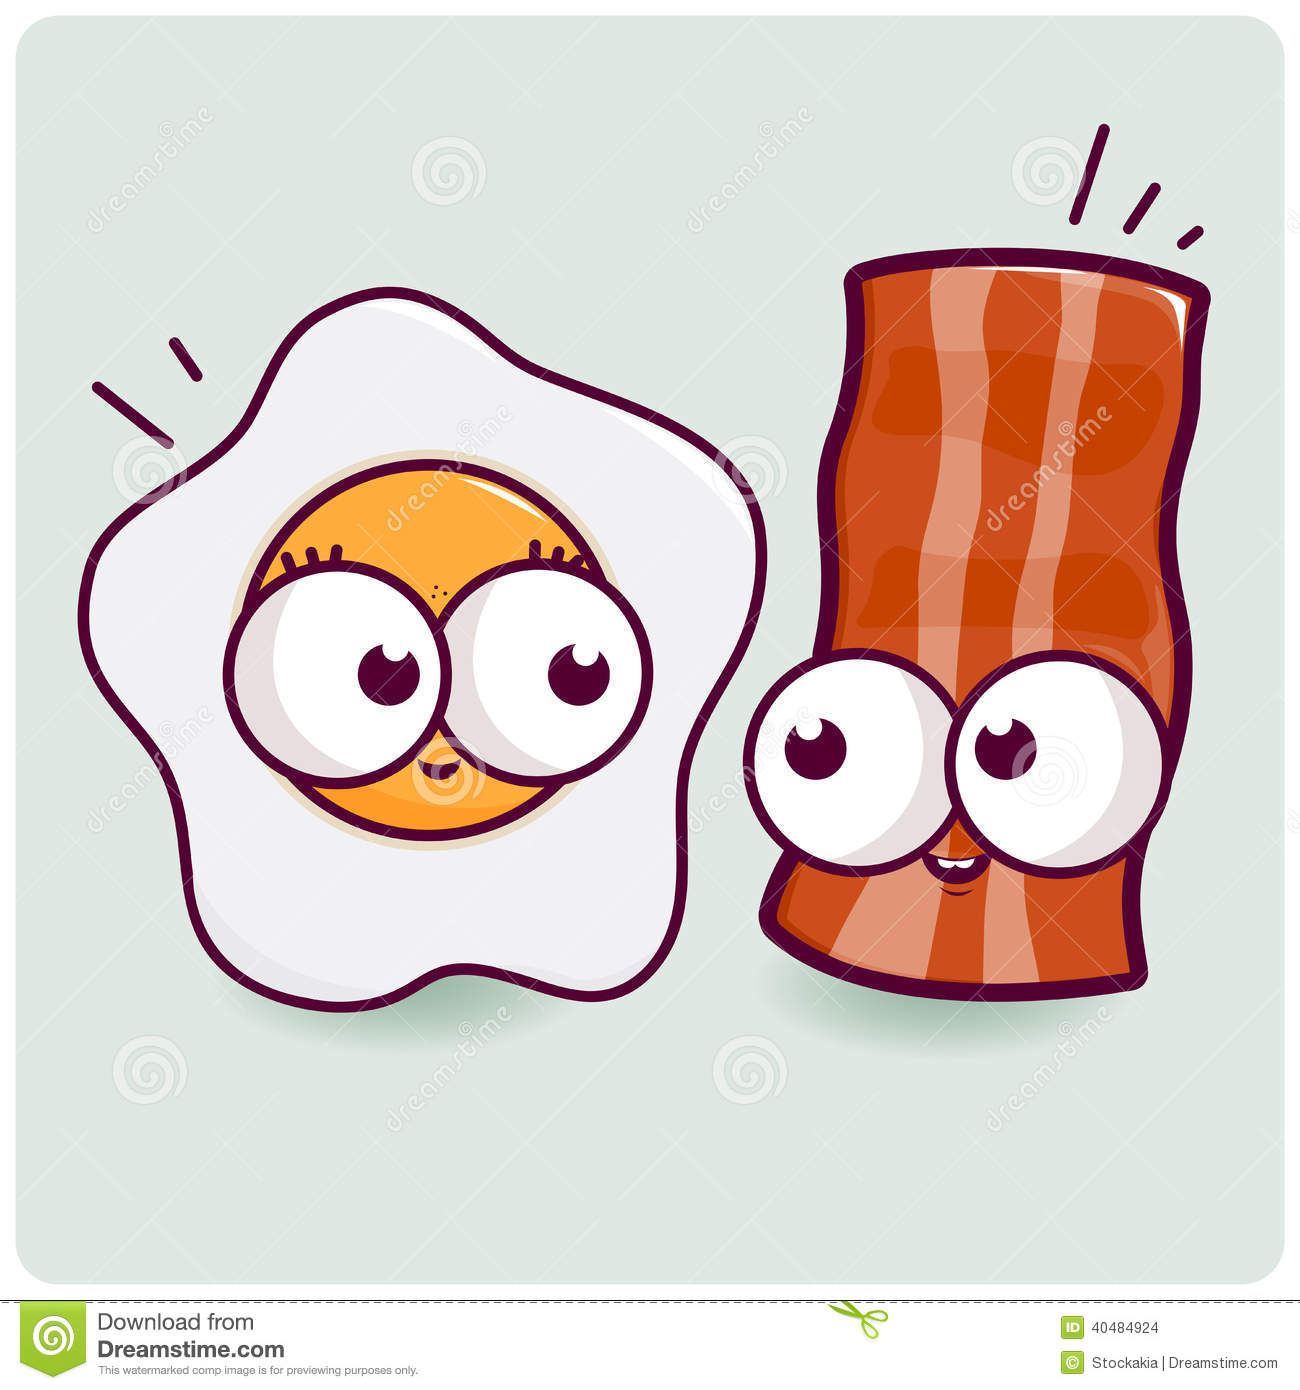 Of eggs free download. Bacon clipart carton